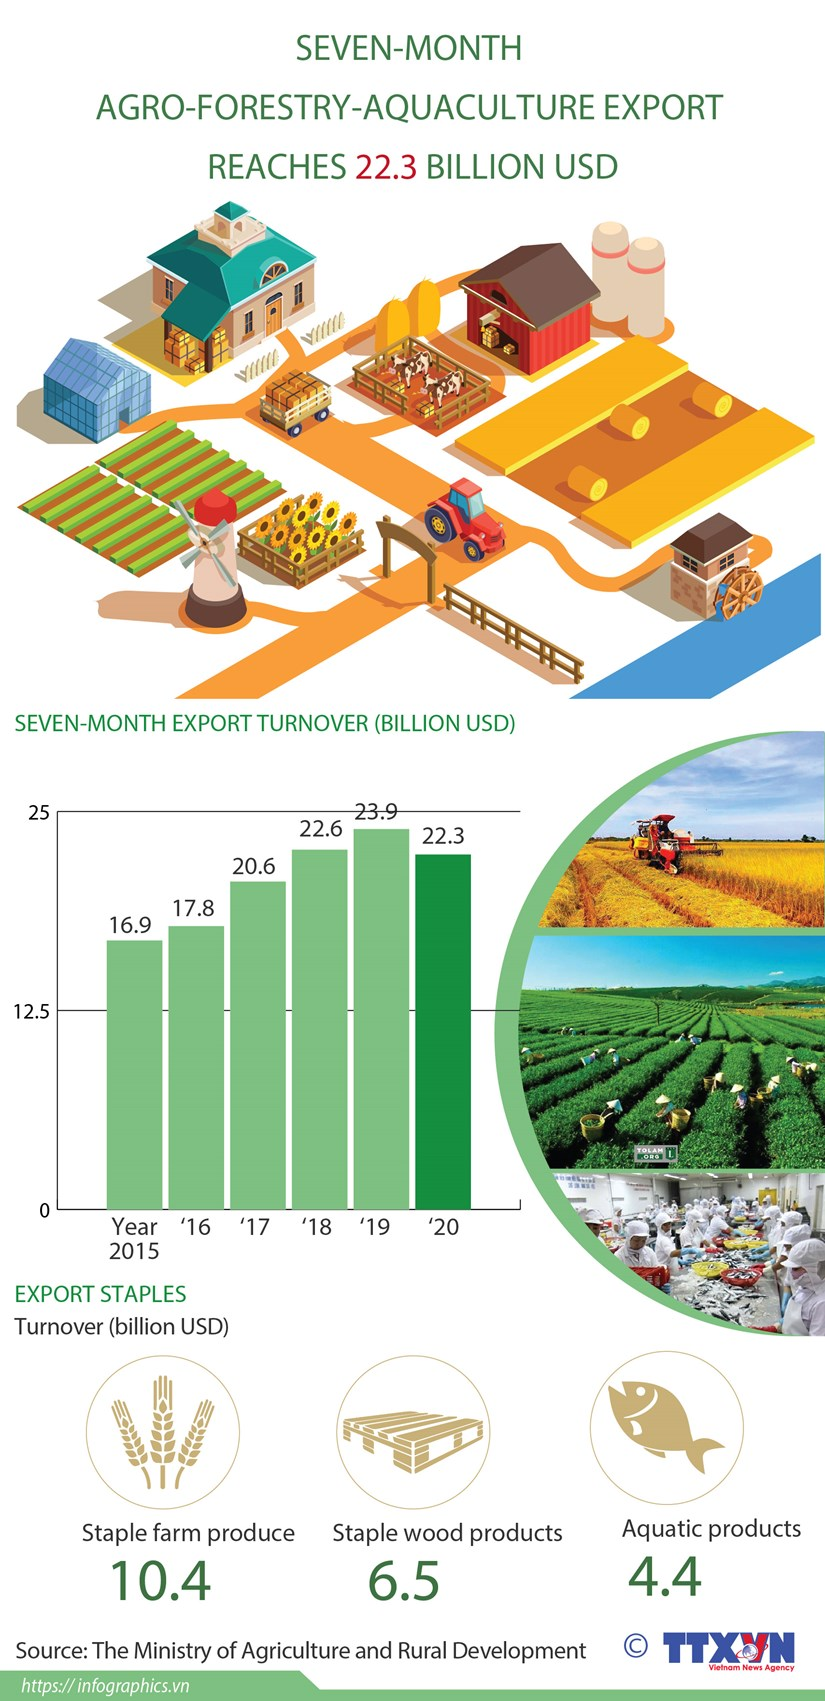 Seven-month agro-forestry-aquaculture export reaches 22.3 billion USD hinh anh 1